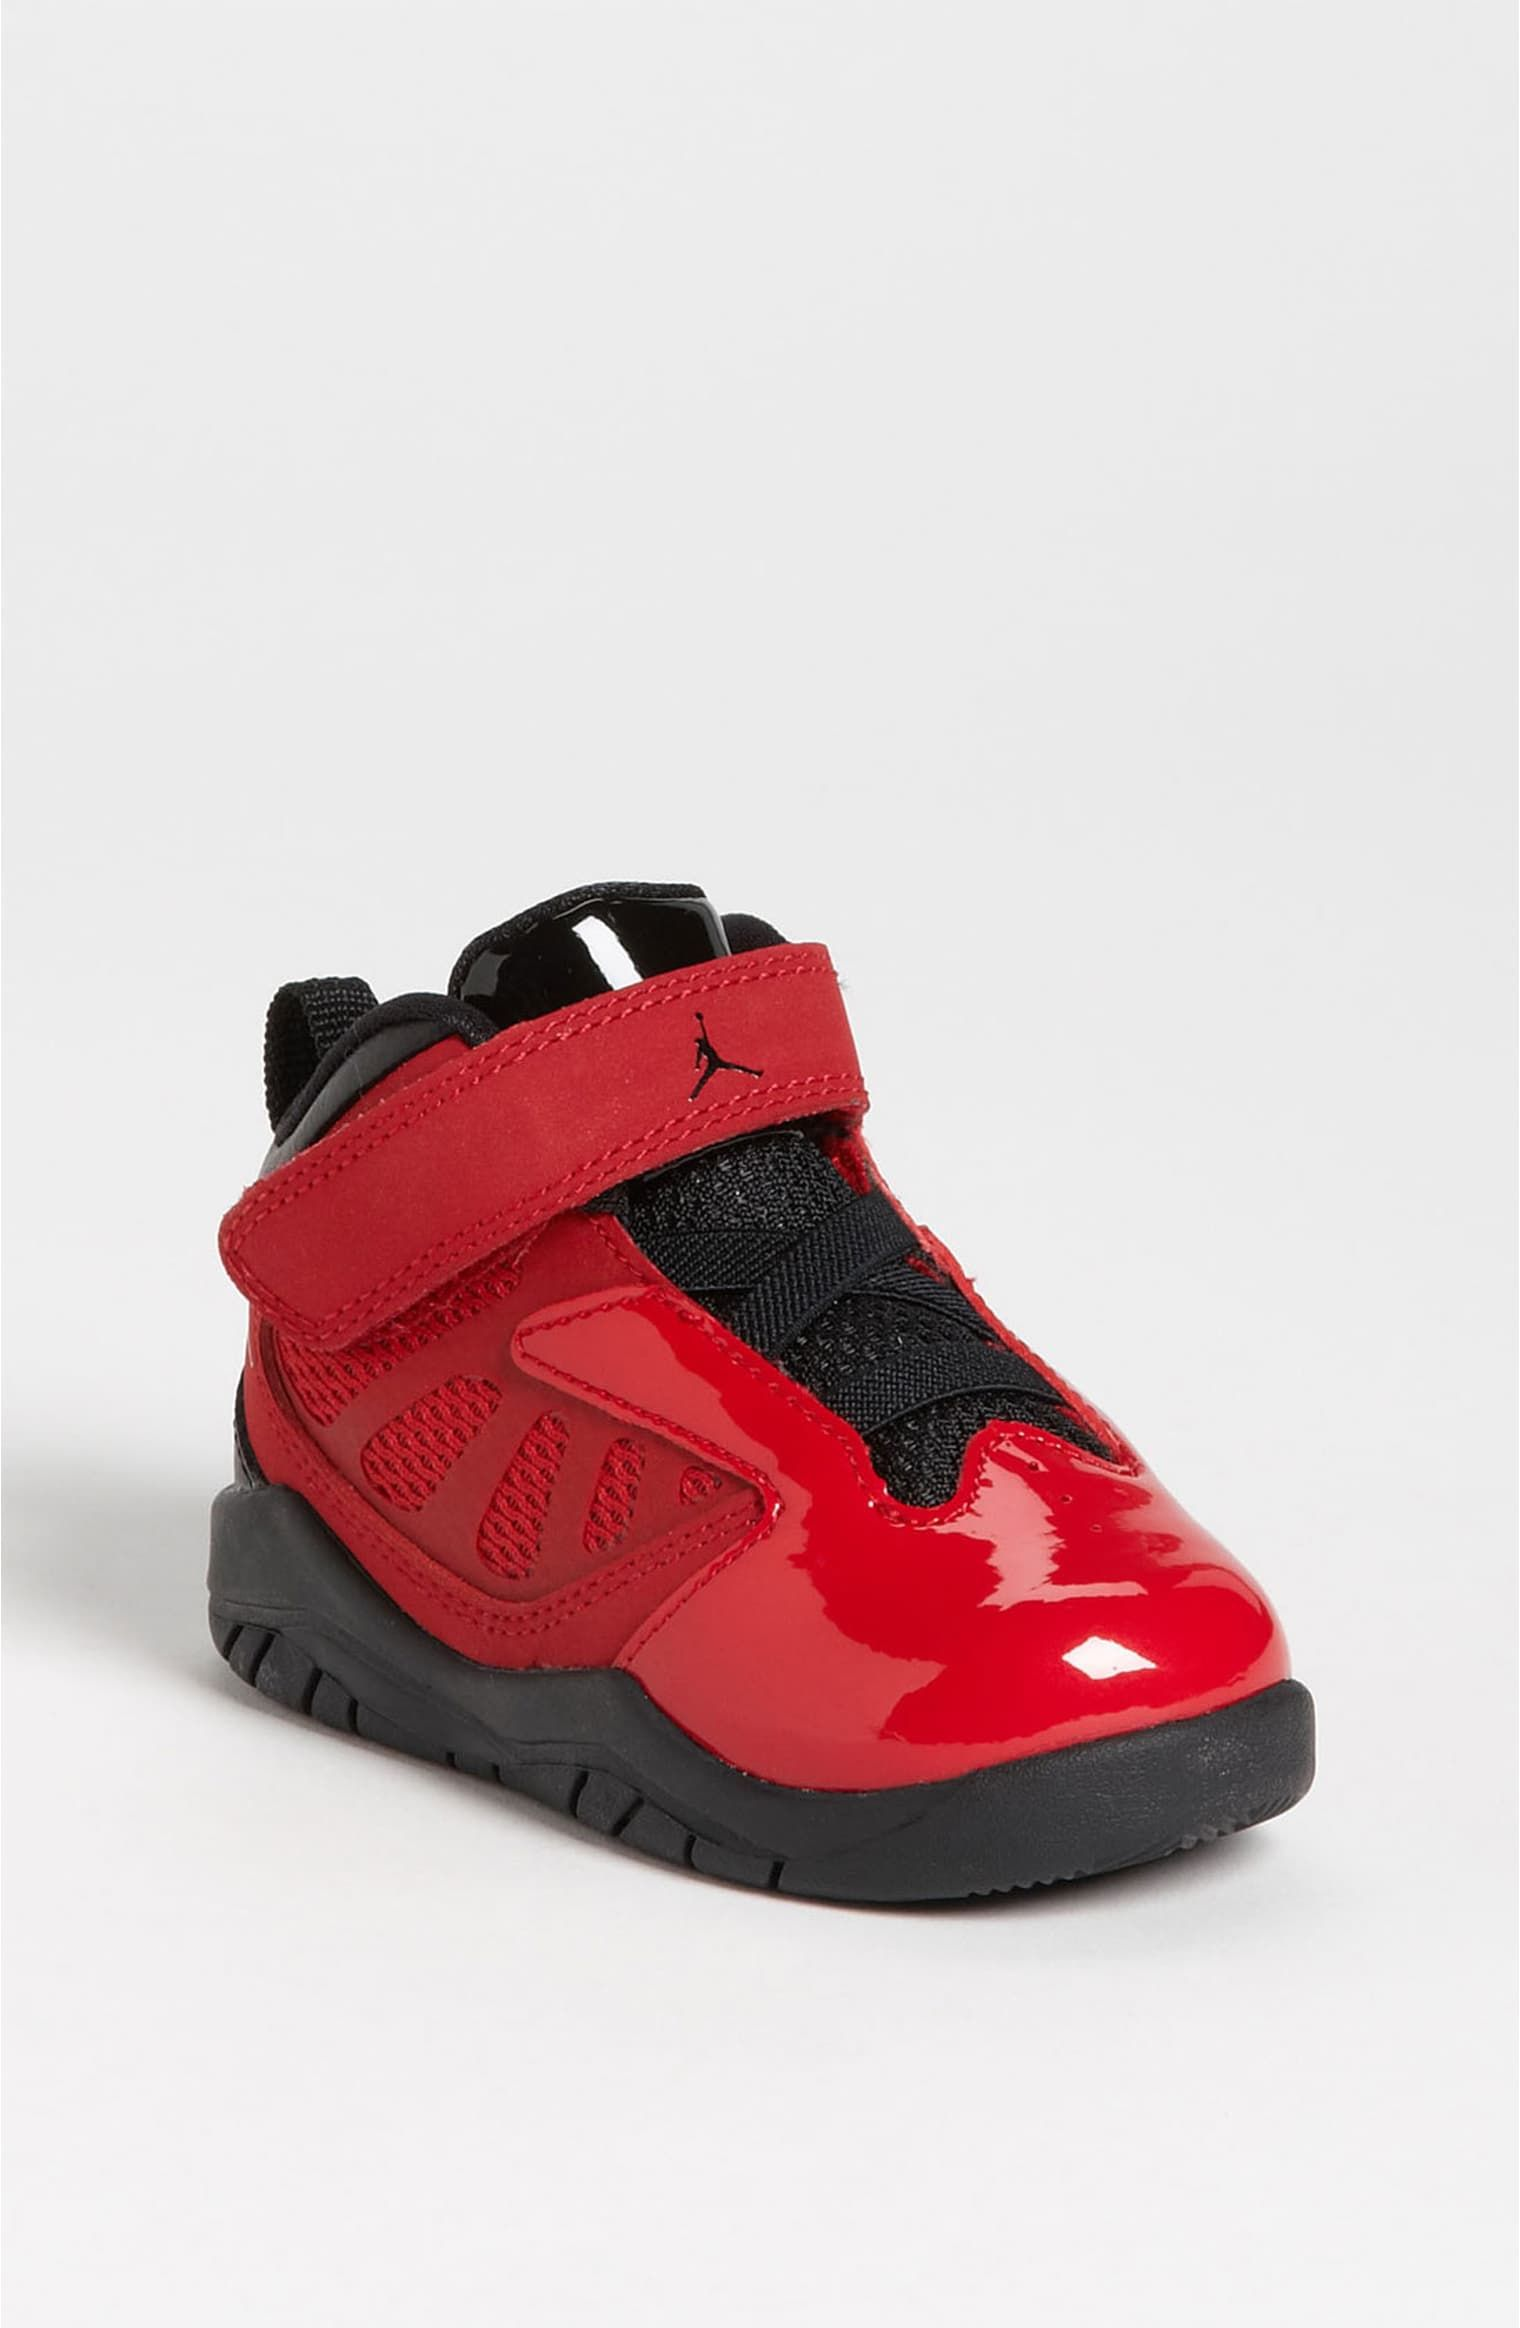 Boy shoes, Cute baby shoes, Baby boy shoes